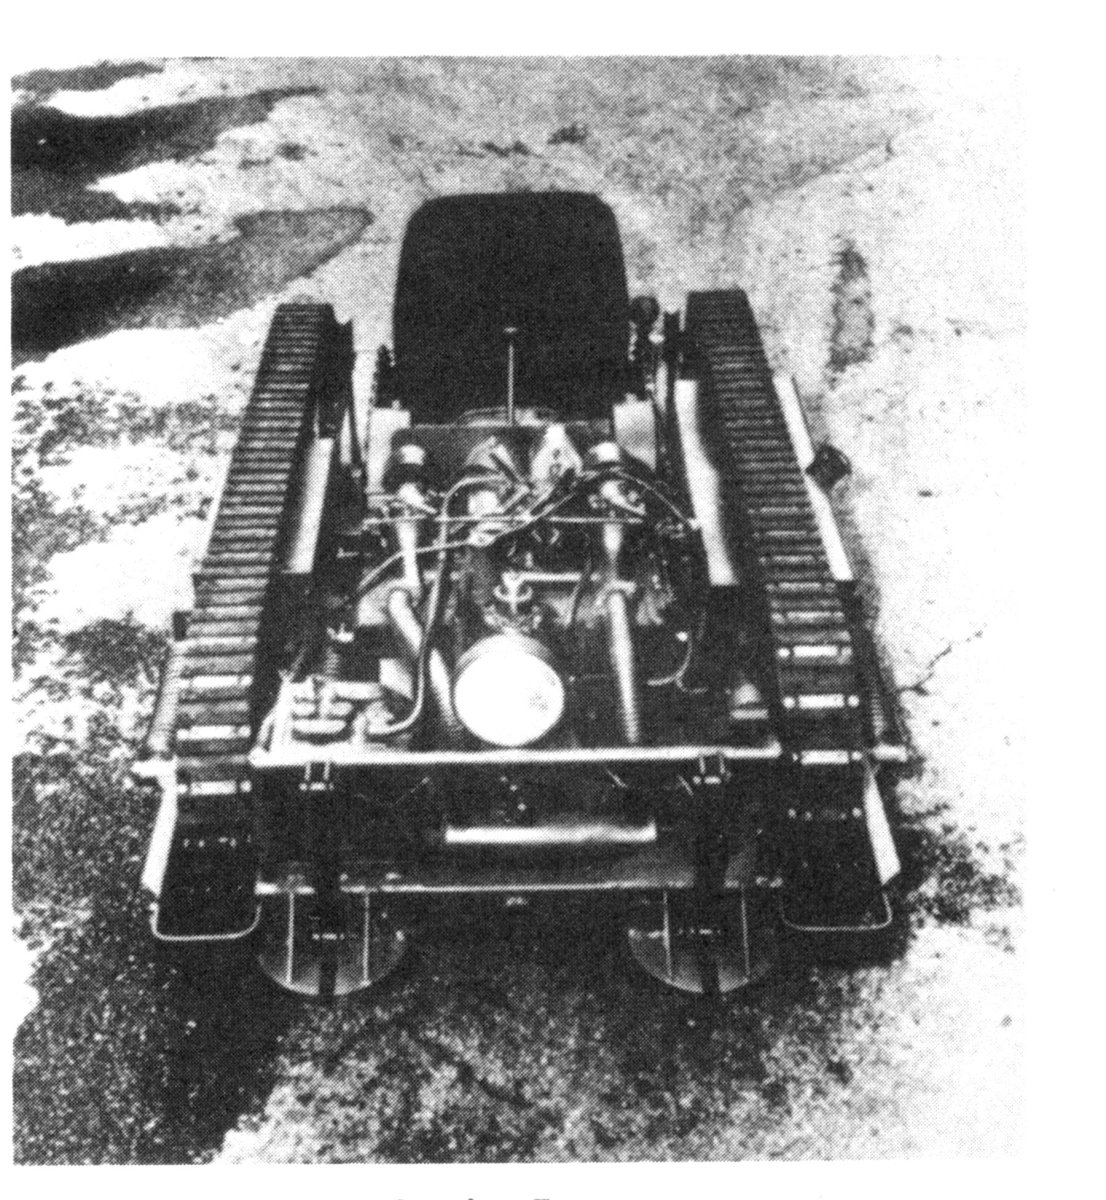 The Crosley Tug was used mainly as a tow vehicle, but came in several other configurations, including a self-propelled gun mount.